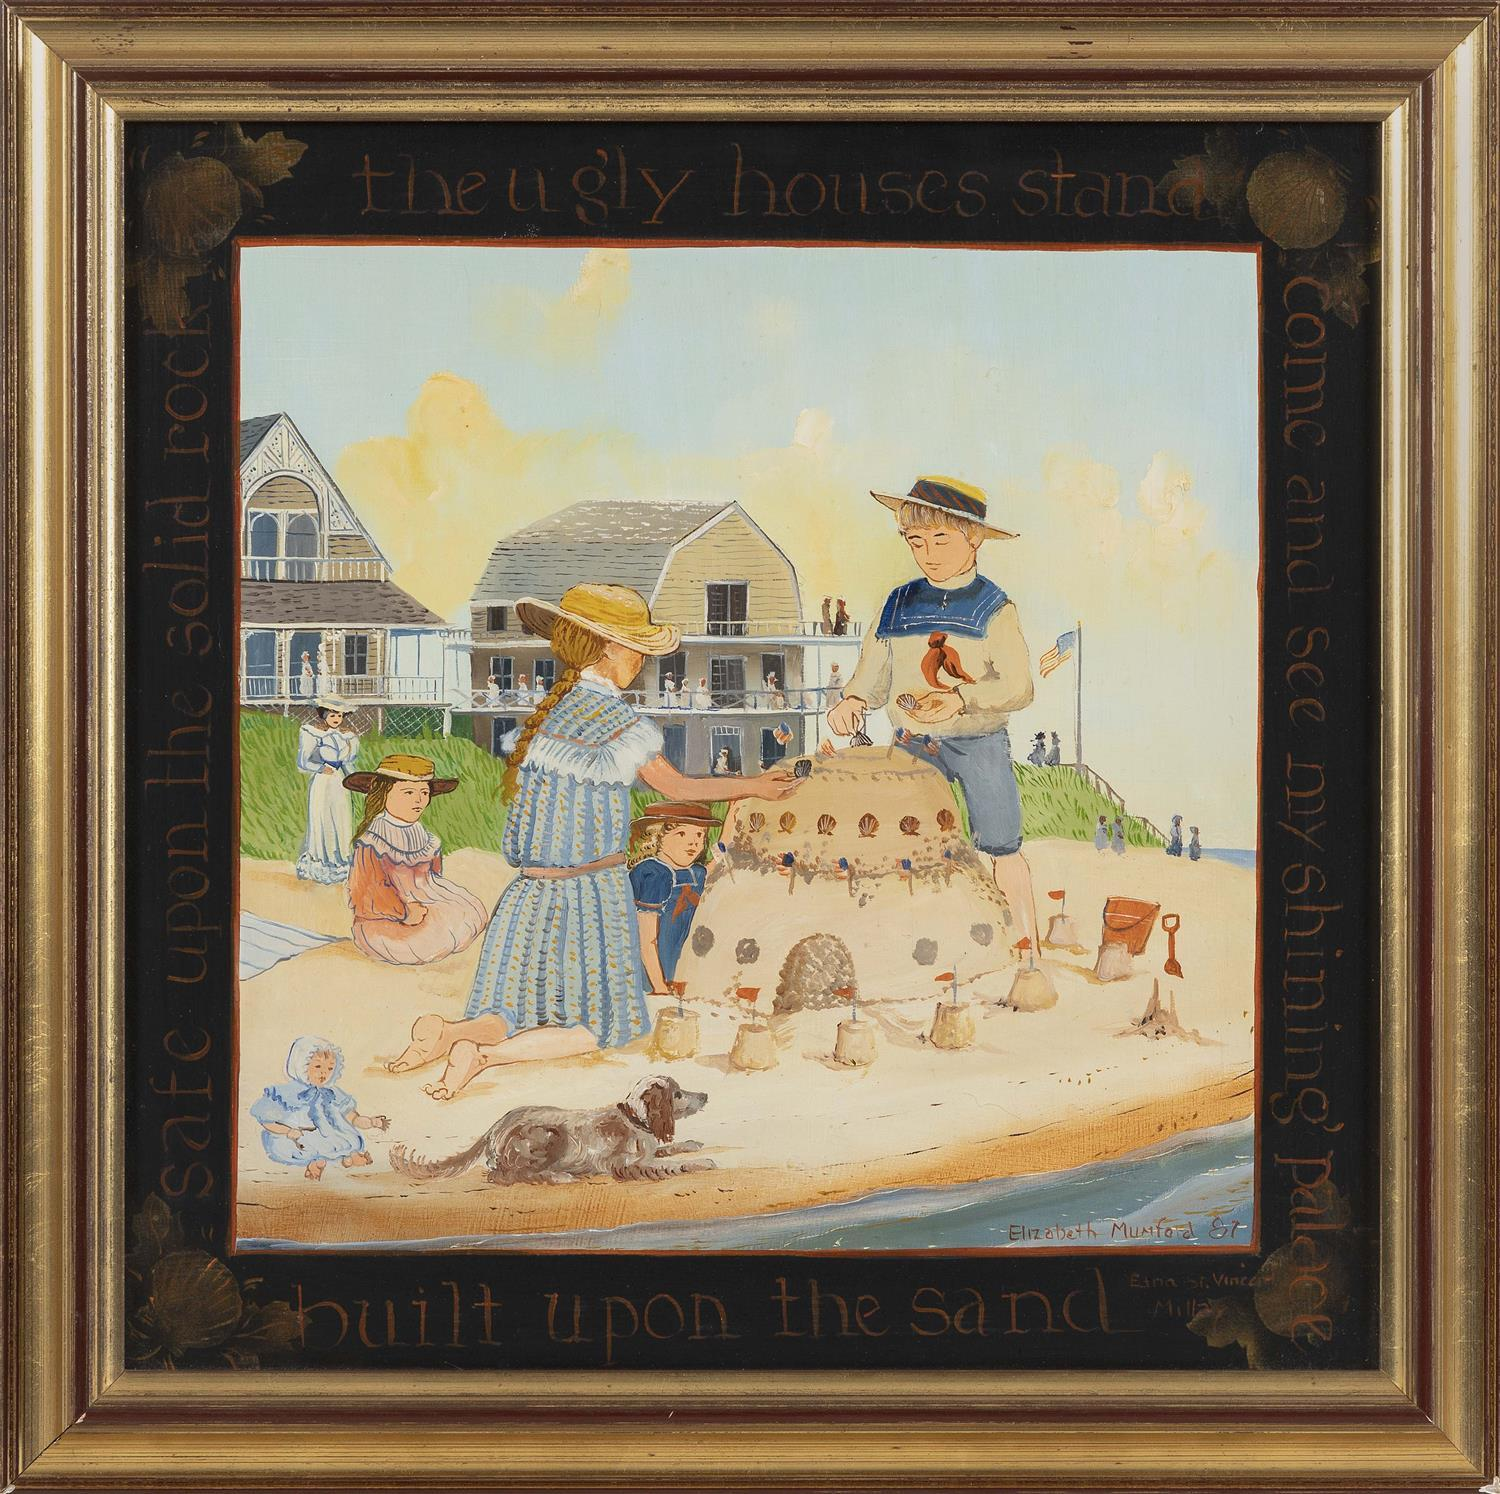 """ELIZABETH MUMFORD, Massachusetts, Contemporary, """"Come and See my Shining Palace, Built upon the Sand ...""""., Oil on board, 15"""" x 15""""...."""